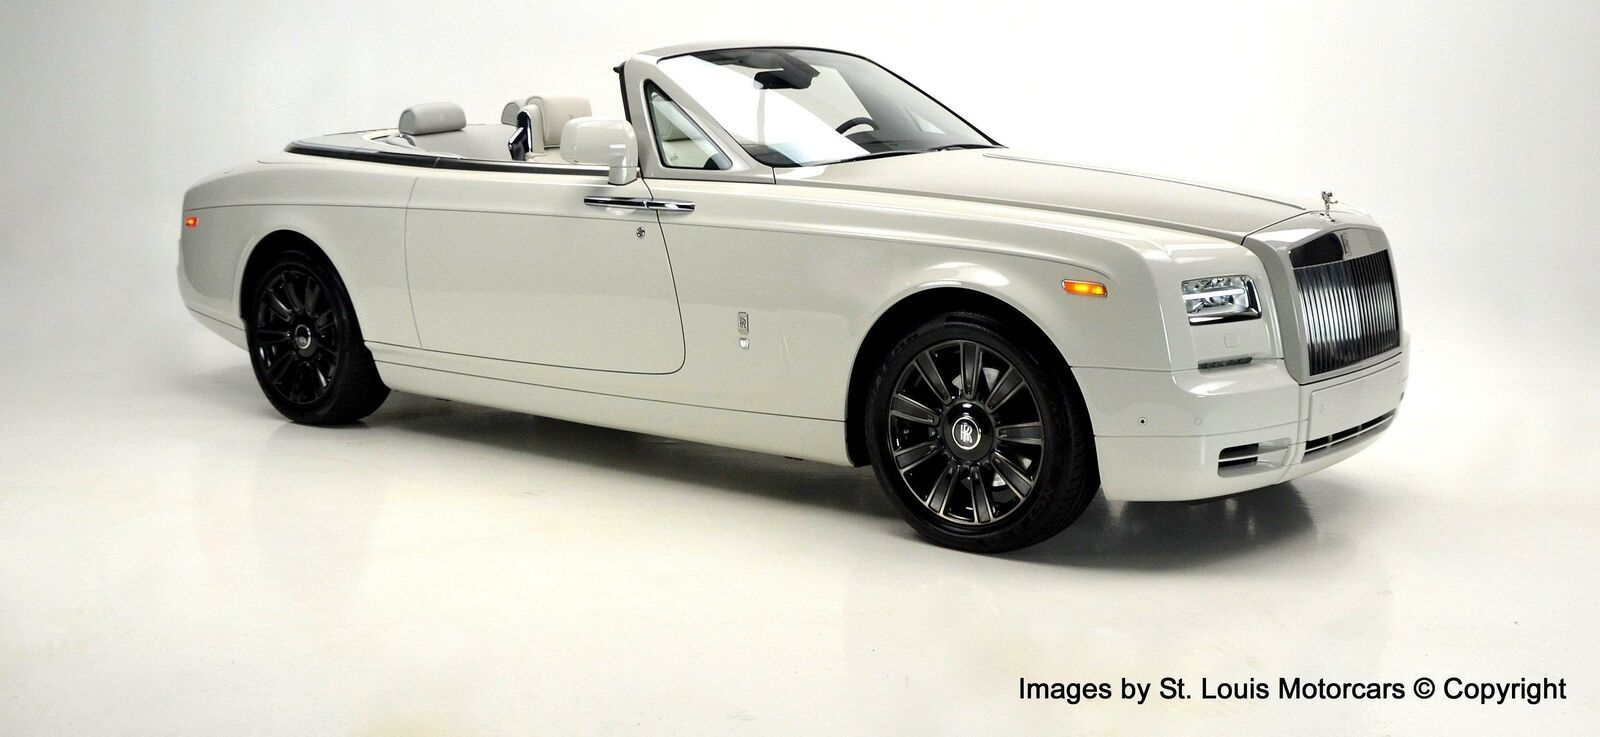 Used 2017 Rolls Royce Phantom Drophead Coupe Zenith 2017 Rolls Royce Phantom Zenith Drophead Coupe W 46 Miles 2020 Is In Stock And For Sale Mycarboard Com Rolls Royce Phantom Drophead Rolls Royce Phantom